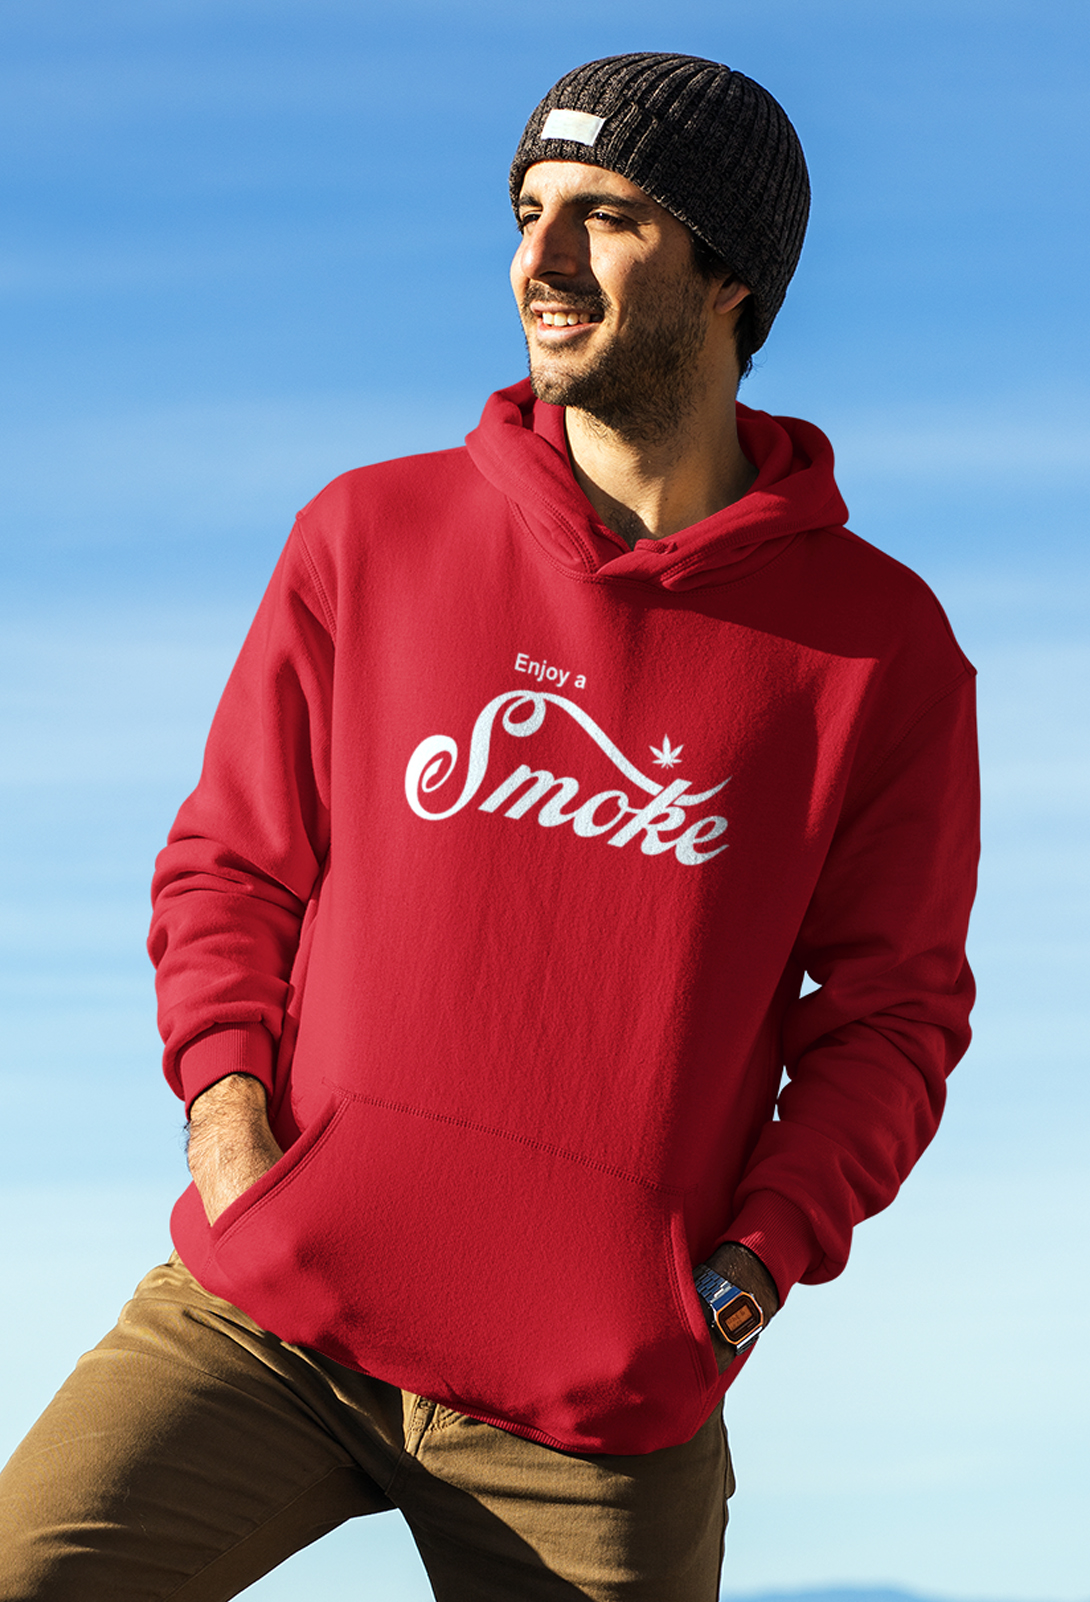 just get high_enjoy a smoke_hoodie